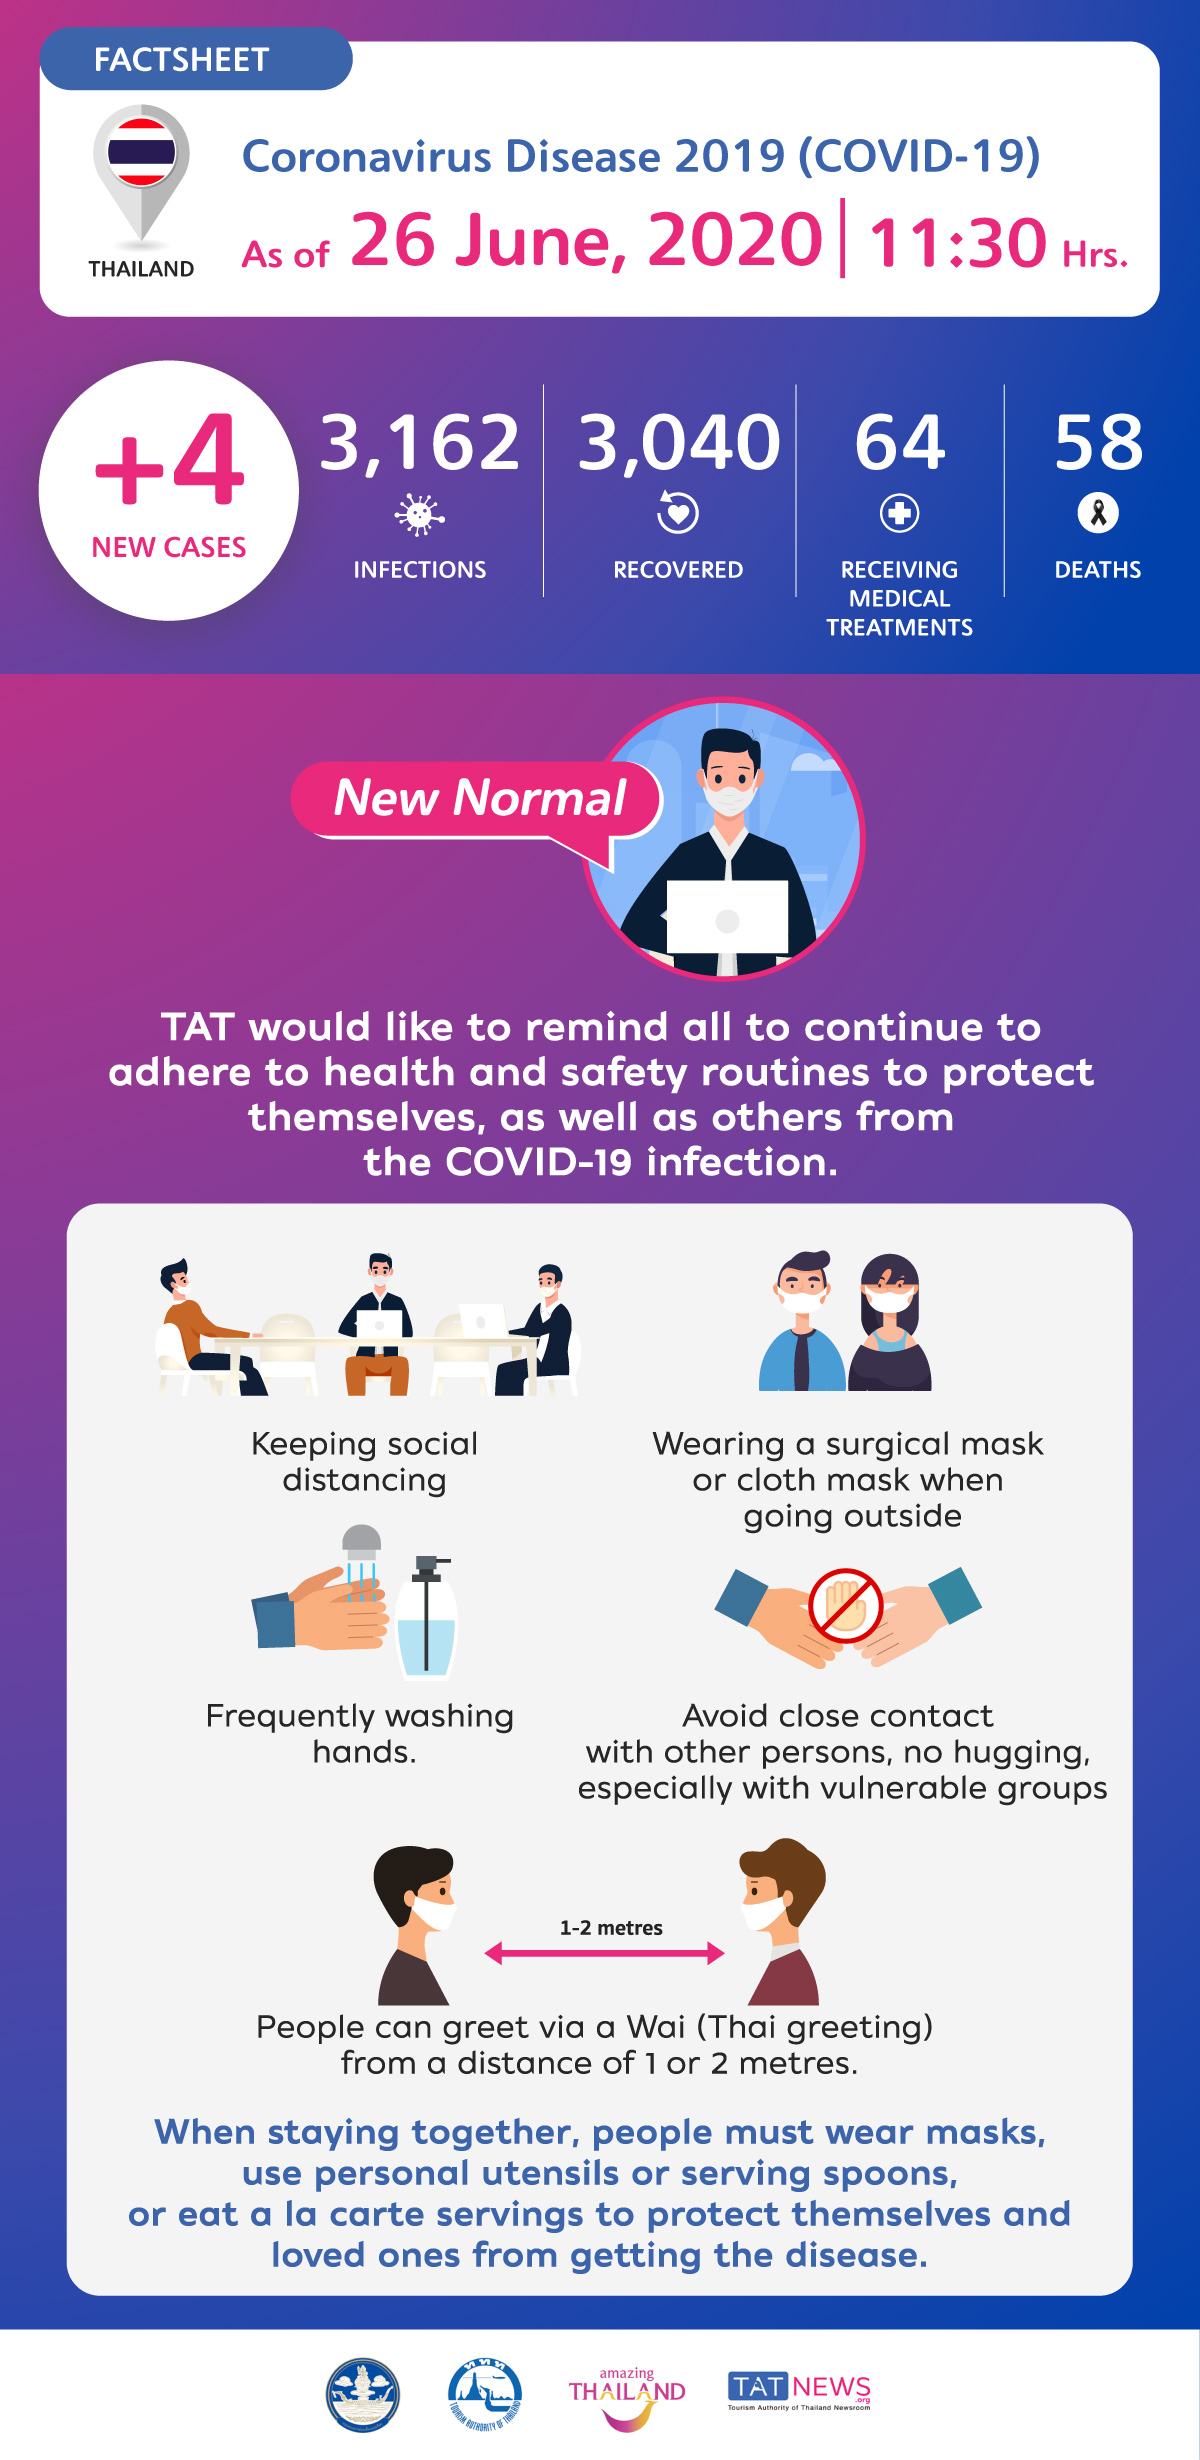 Coronavirus Disease 2019 (COVID-19) situation in Thailand as of 26 June 2020, 11.30 Hrs.